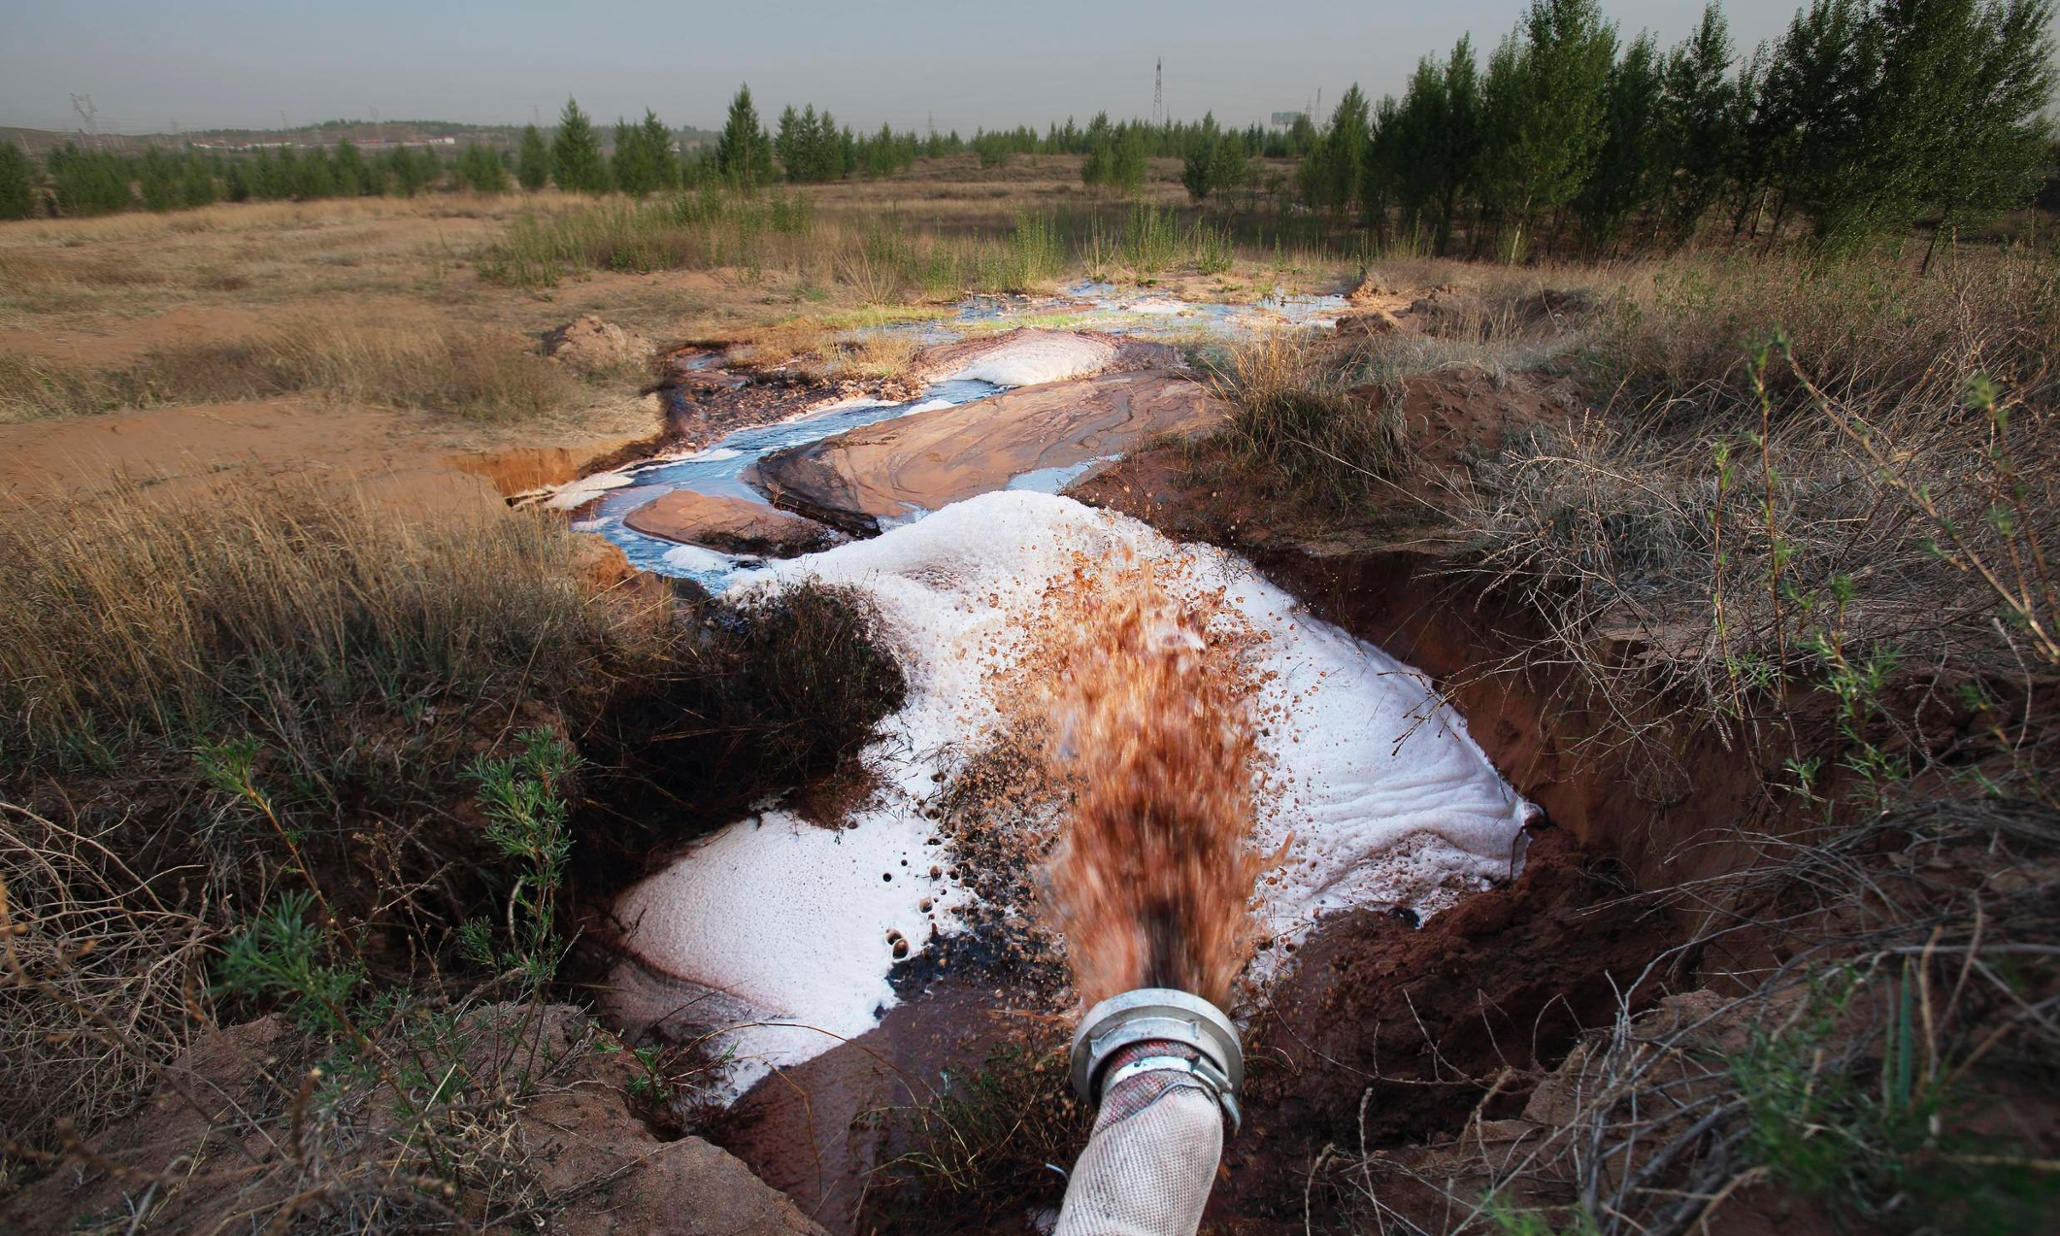 China says more than half of its groundwater is polluted